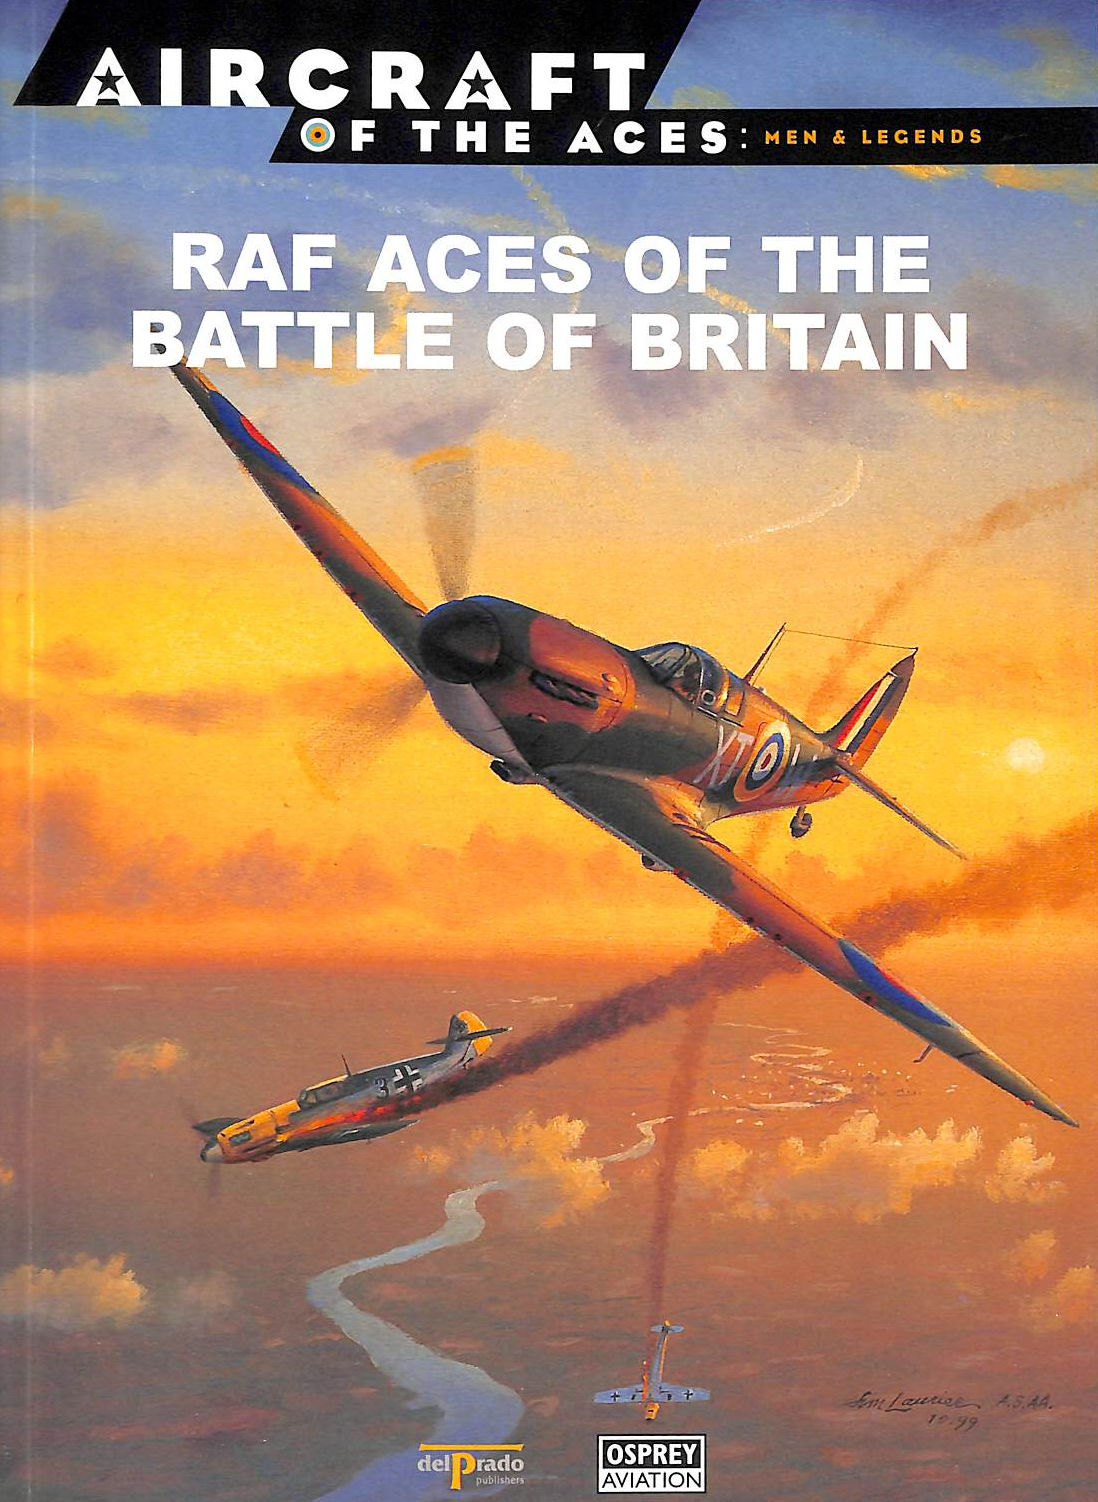 Image for Raf Aces Of The Battle Of Britain: Aircraft Of The Aces - Men & Legends